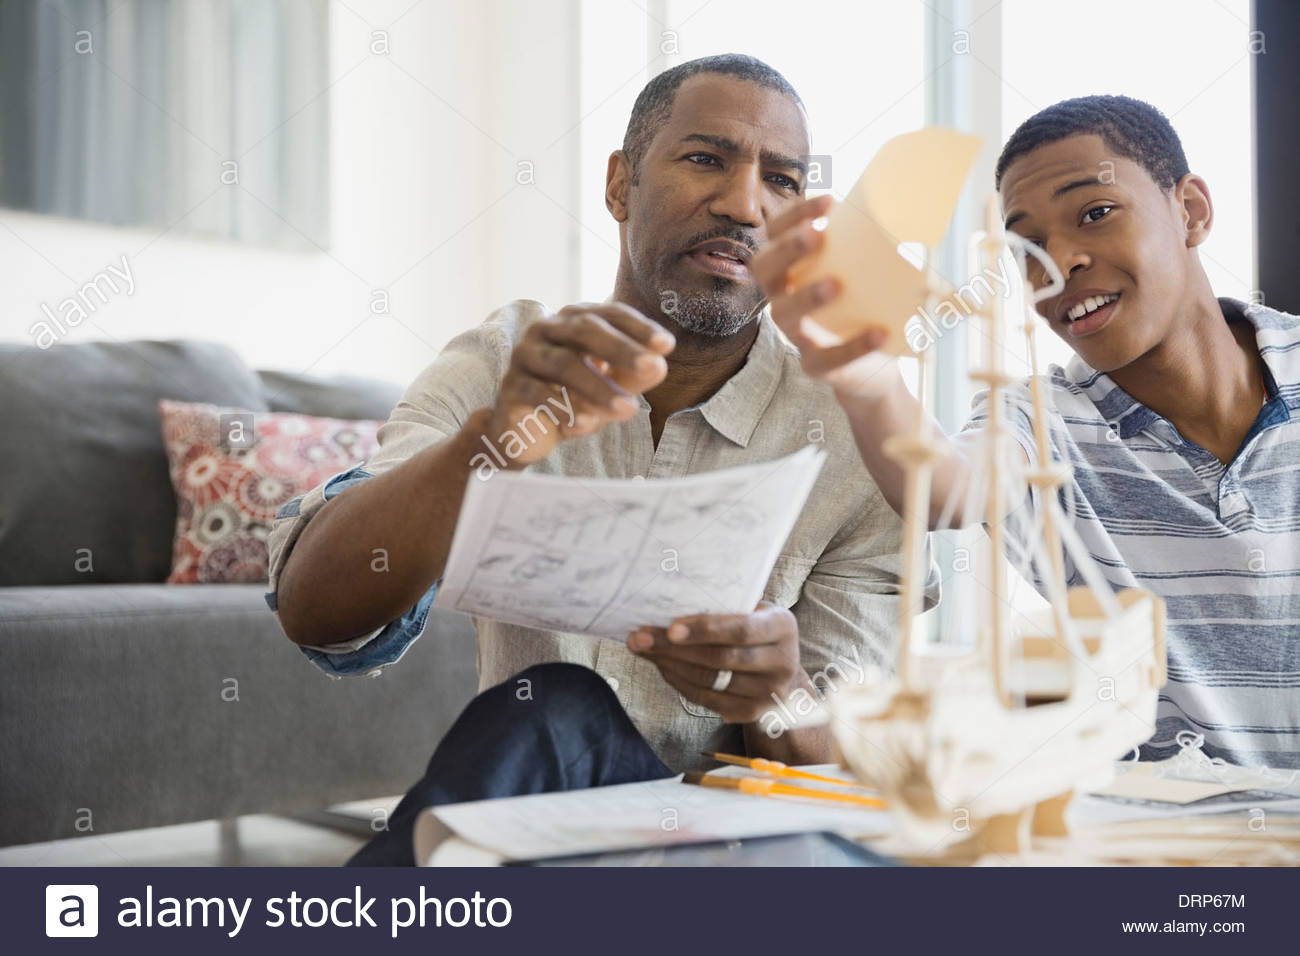 Father and son building ship model at home - Stock Image